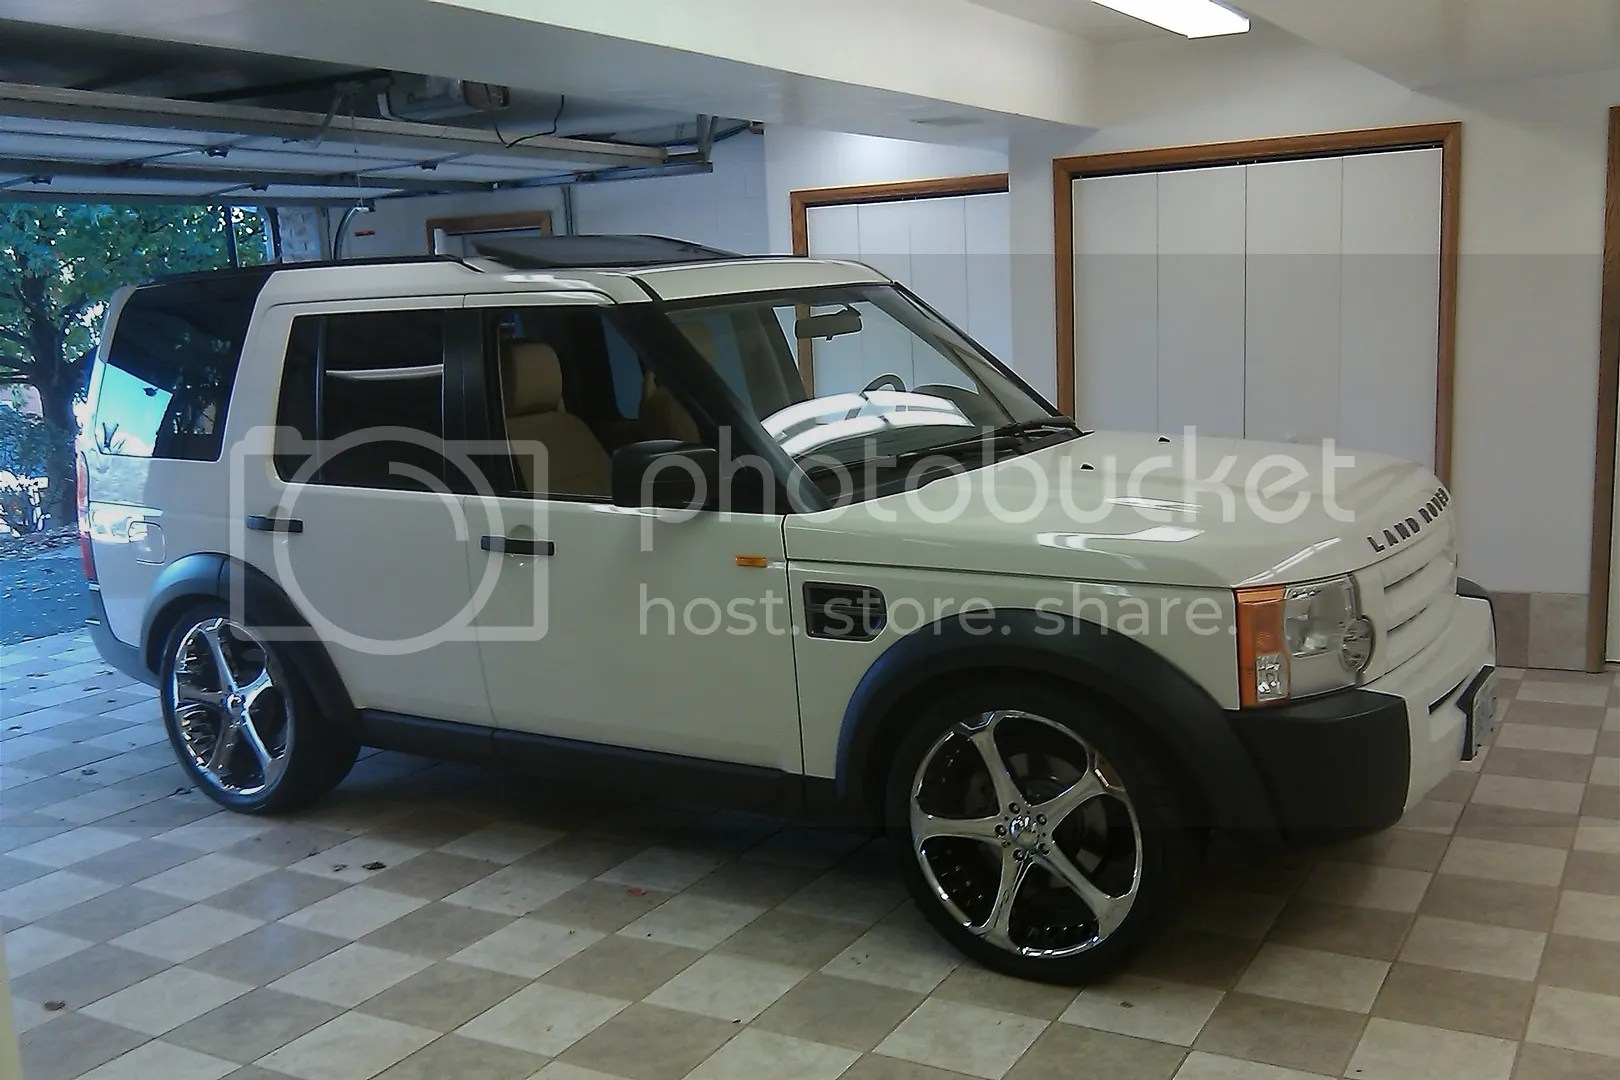 picked up an LR3 not too long ago Land Rover Forums Land Rover